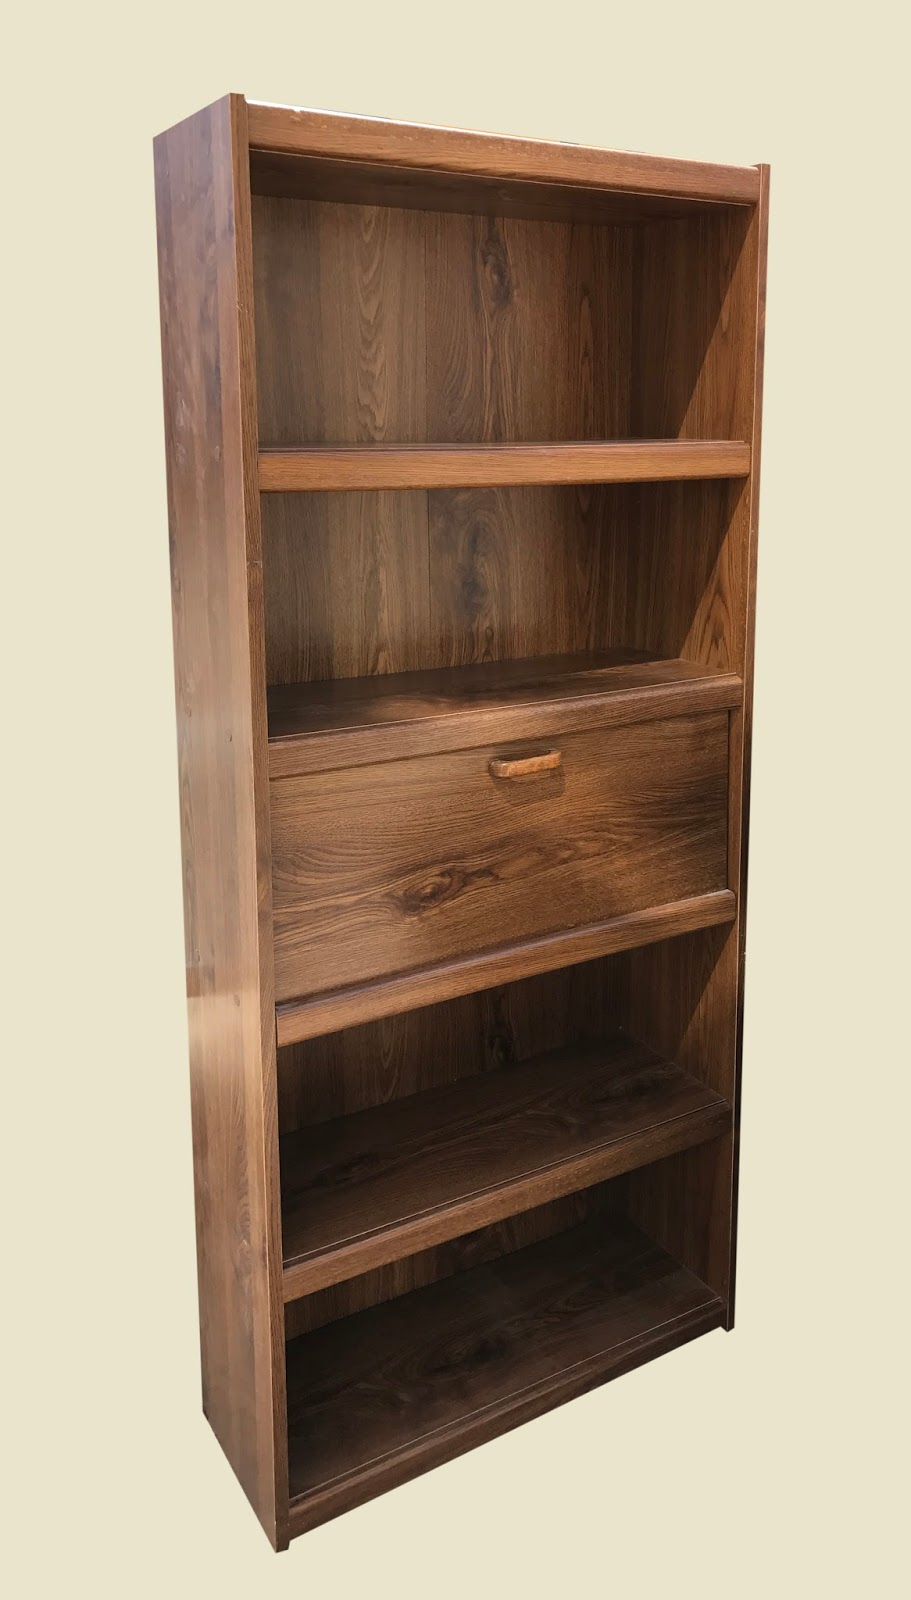 Uhuru Furniture Collectibles Shelf With Cabinet 25 Sold